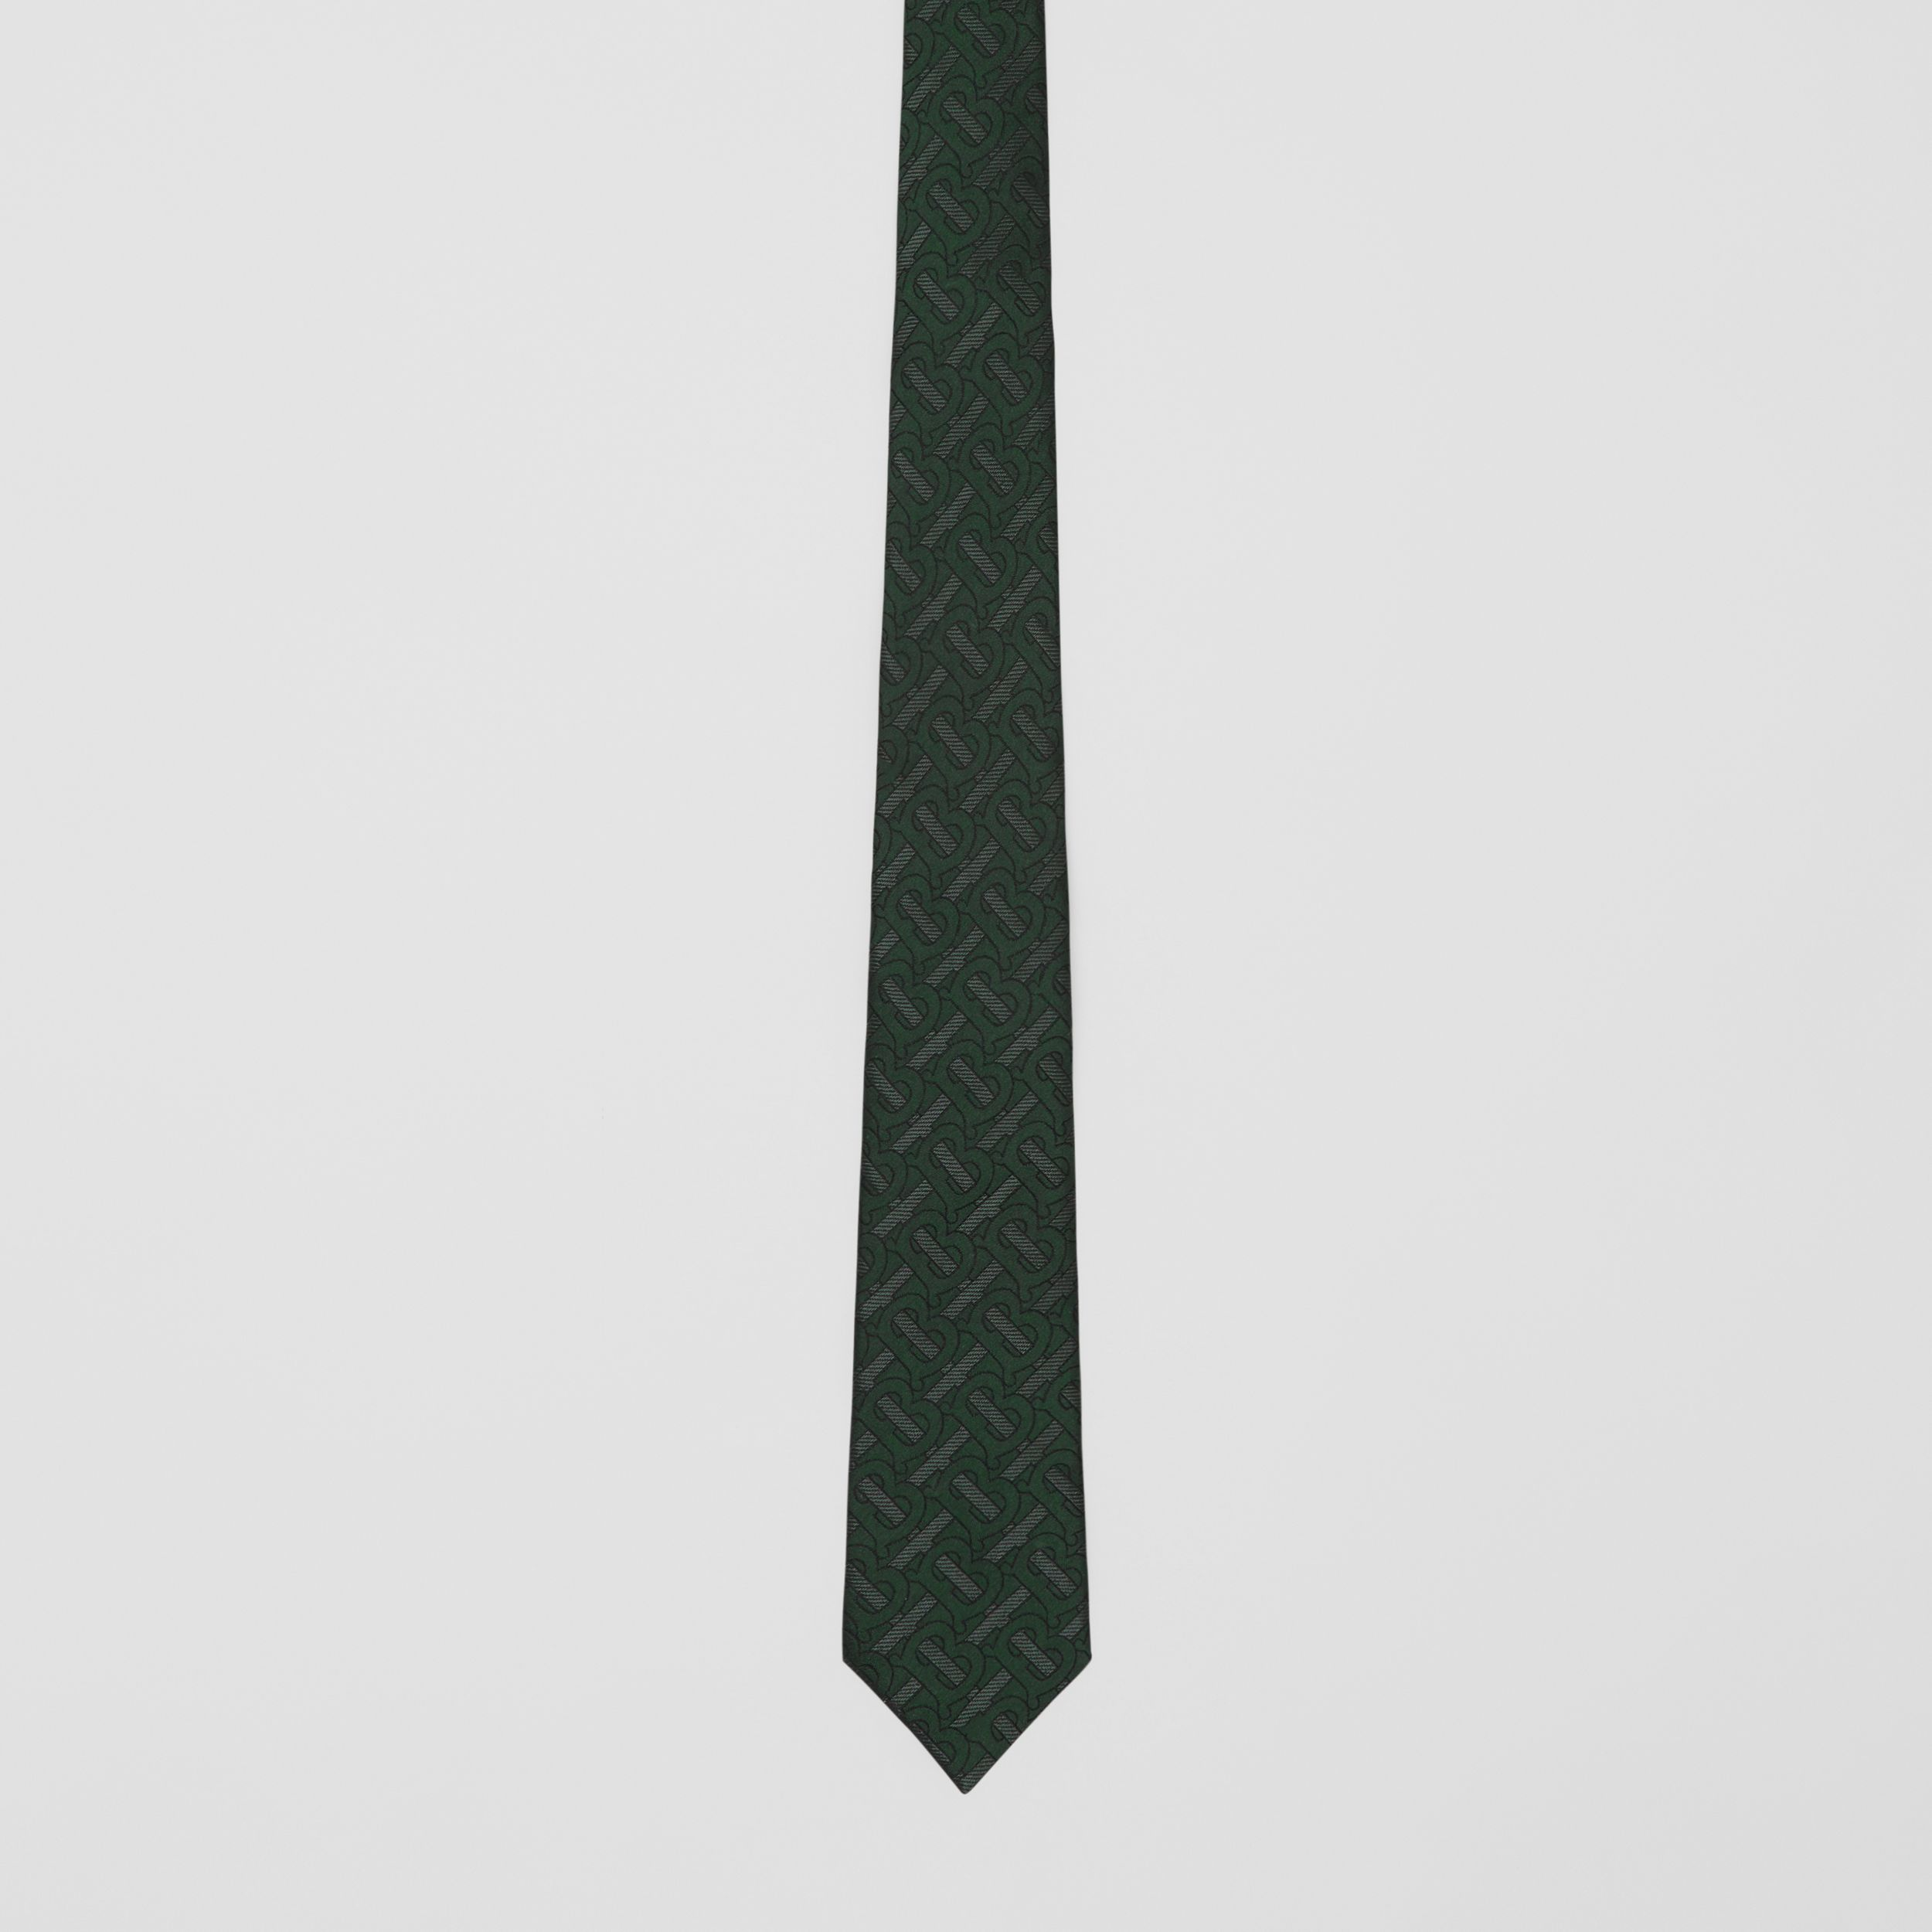 Classic Cut Monogram Silk Blend Jacquard Tie in Dark Forest Green - Men | Burberry - 4